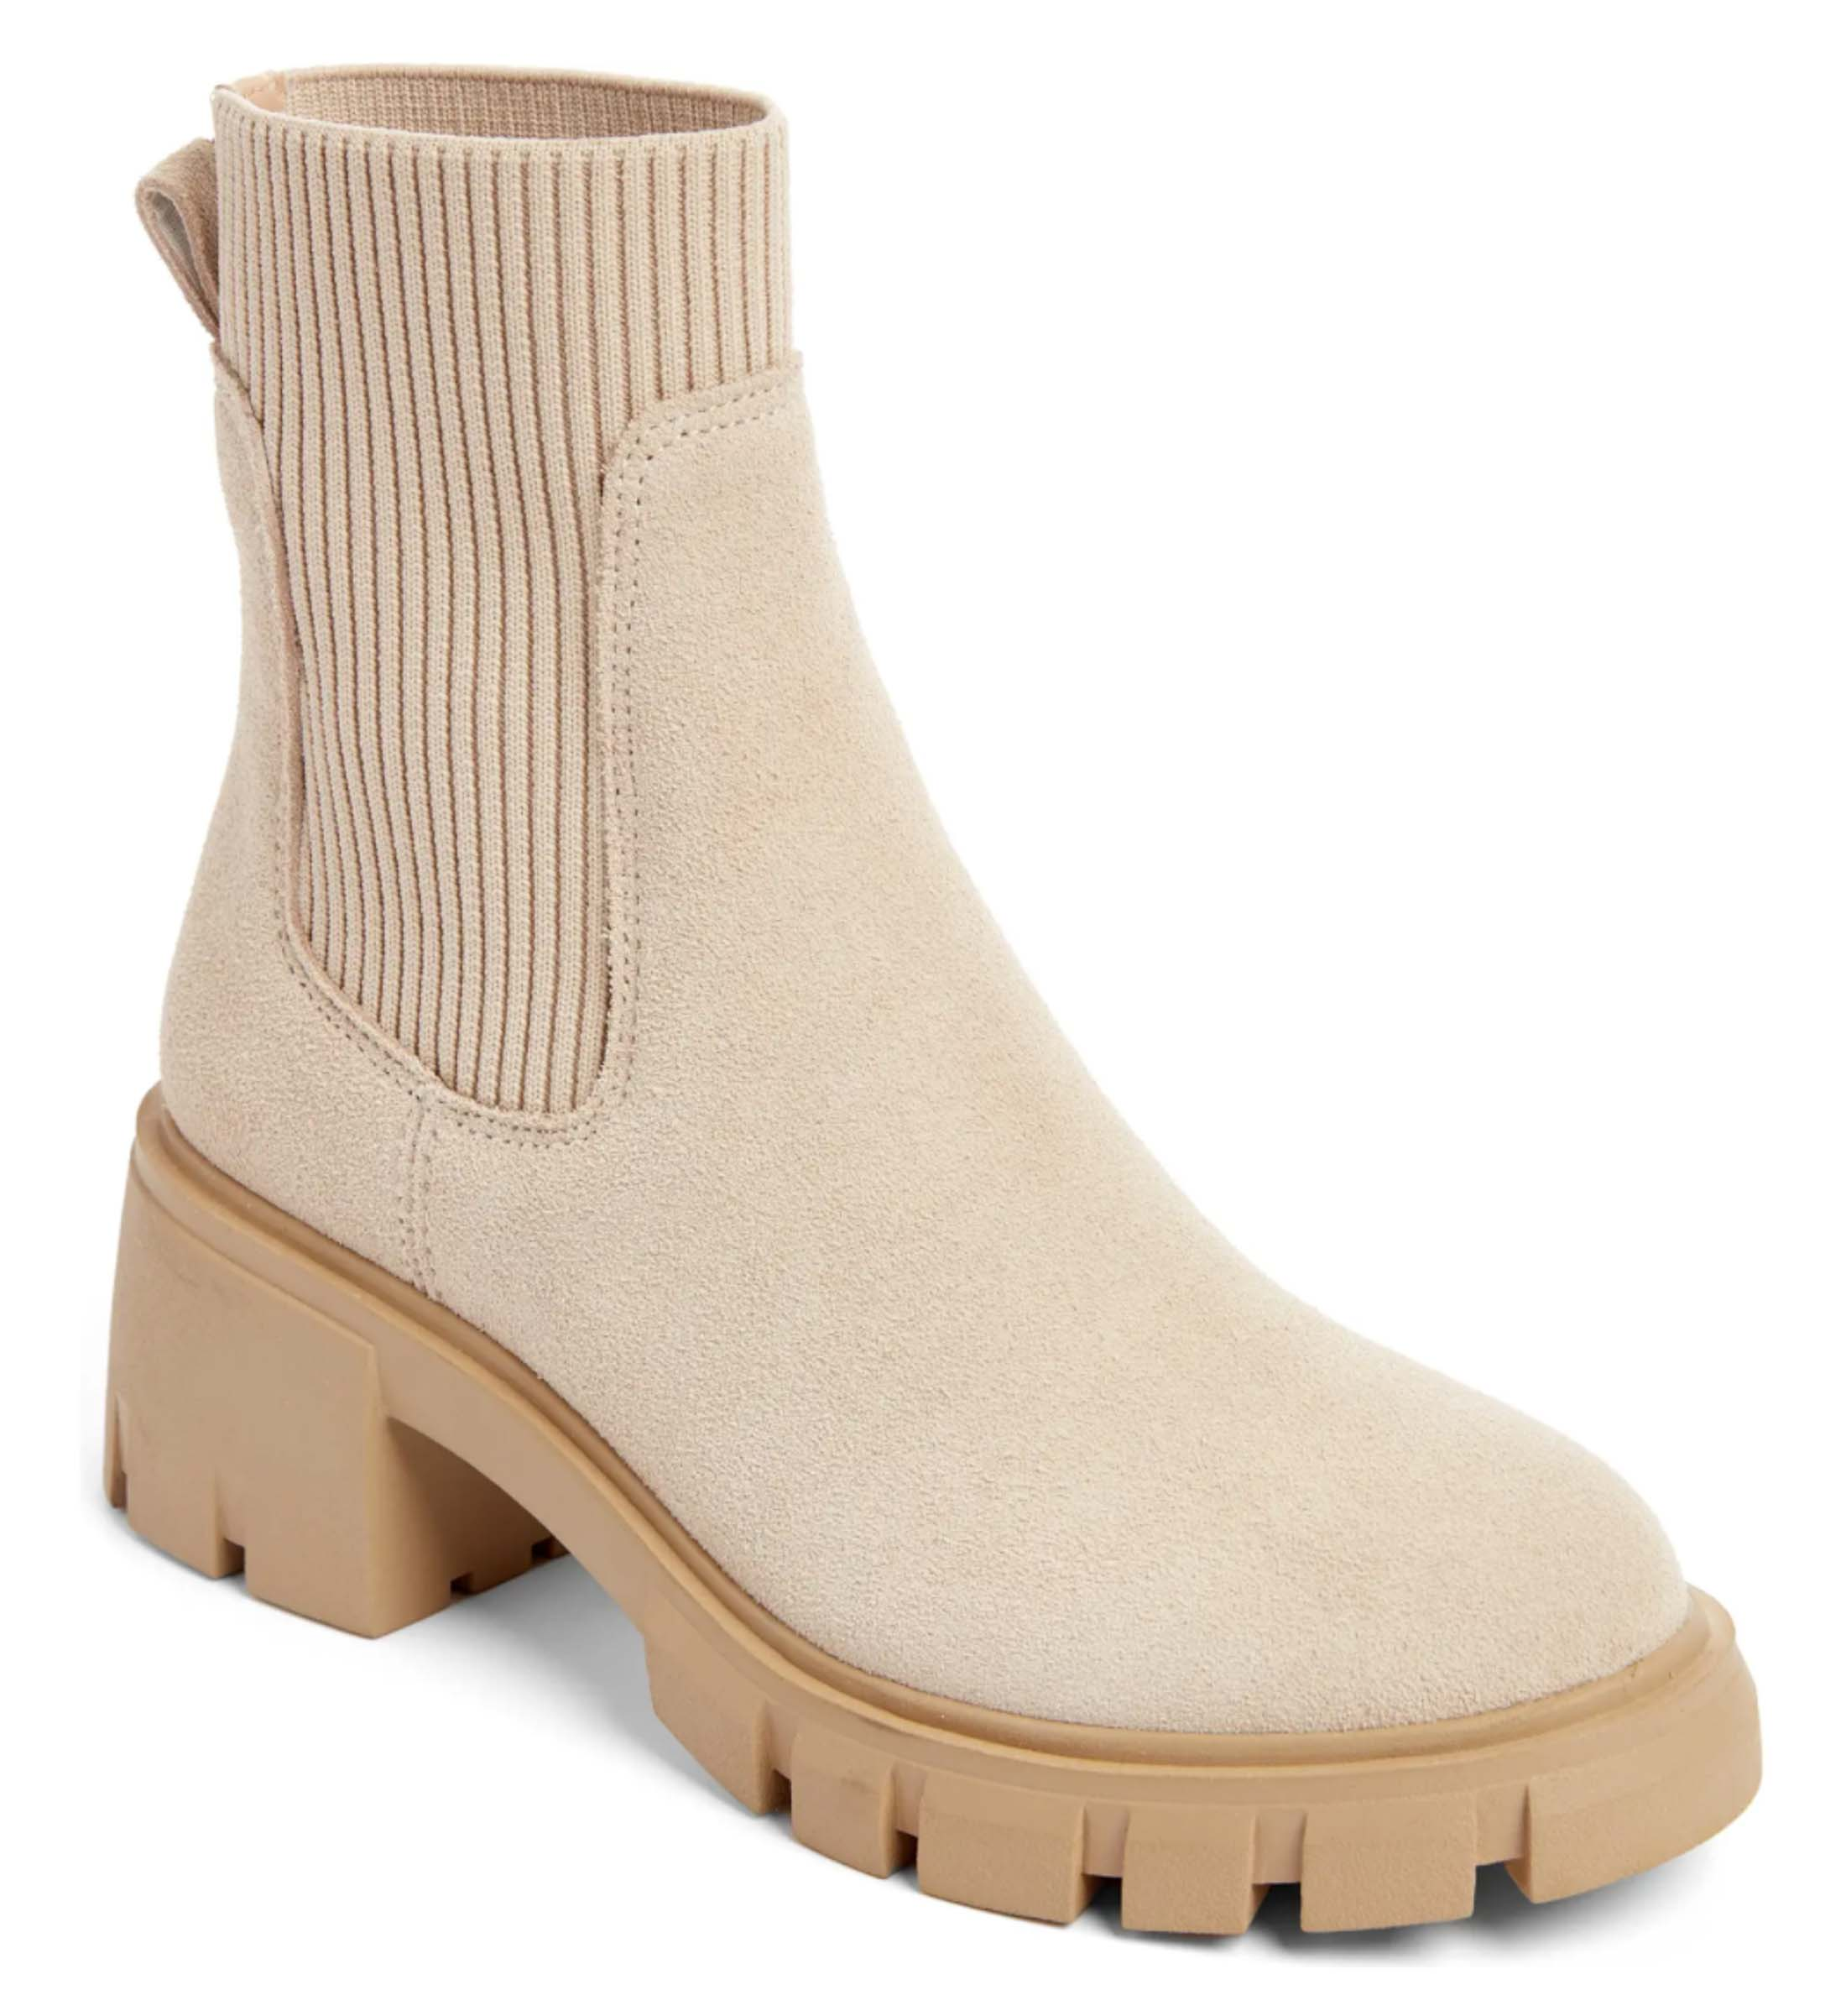 These Steve Madden Chelsea boots give me all the vibes of Prada at a fraction of the price.